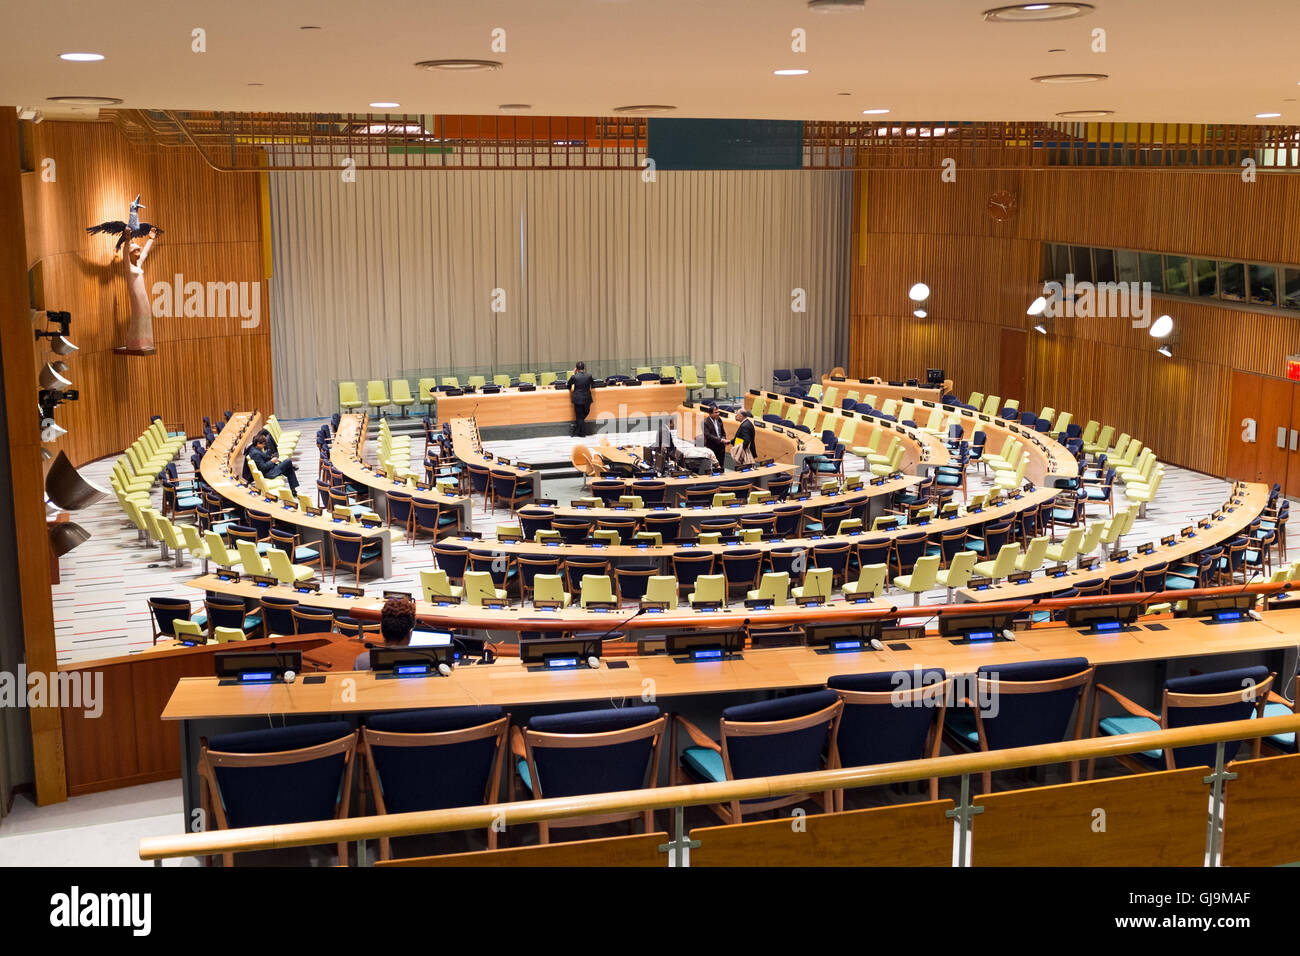 New York City USA United Nations Building. Meeting room. - Stock Image